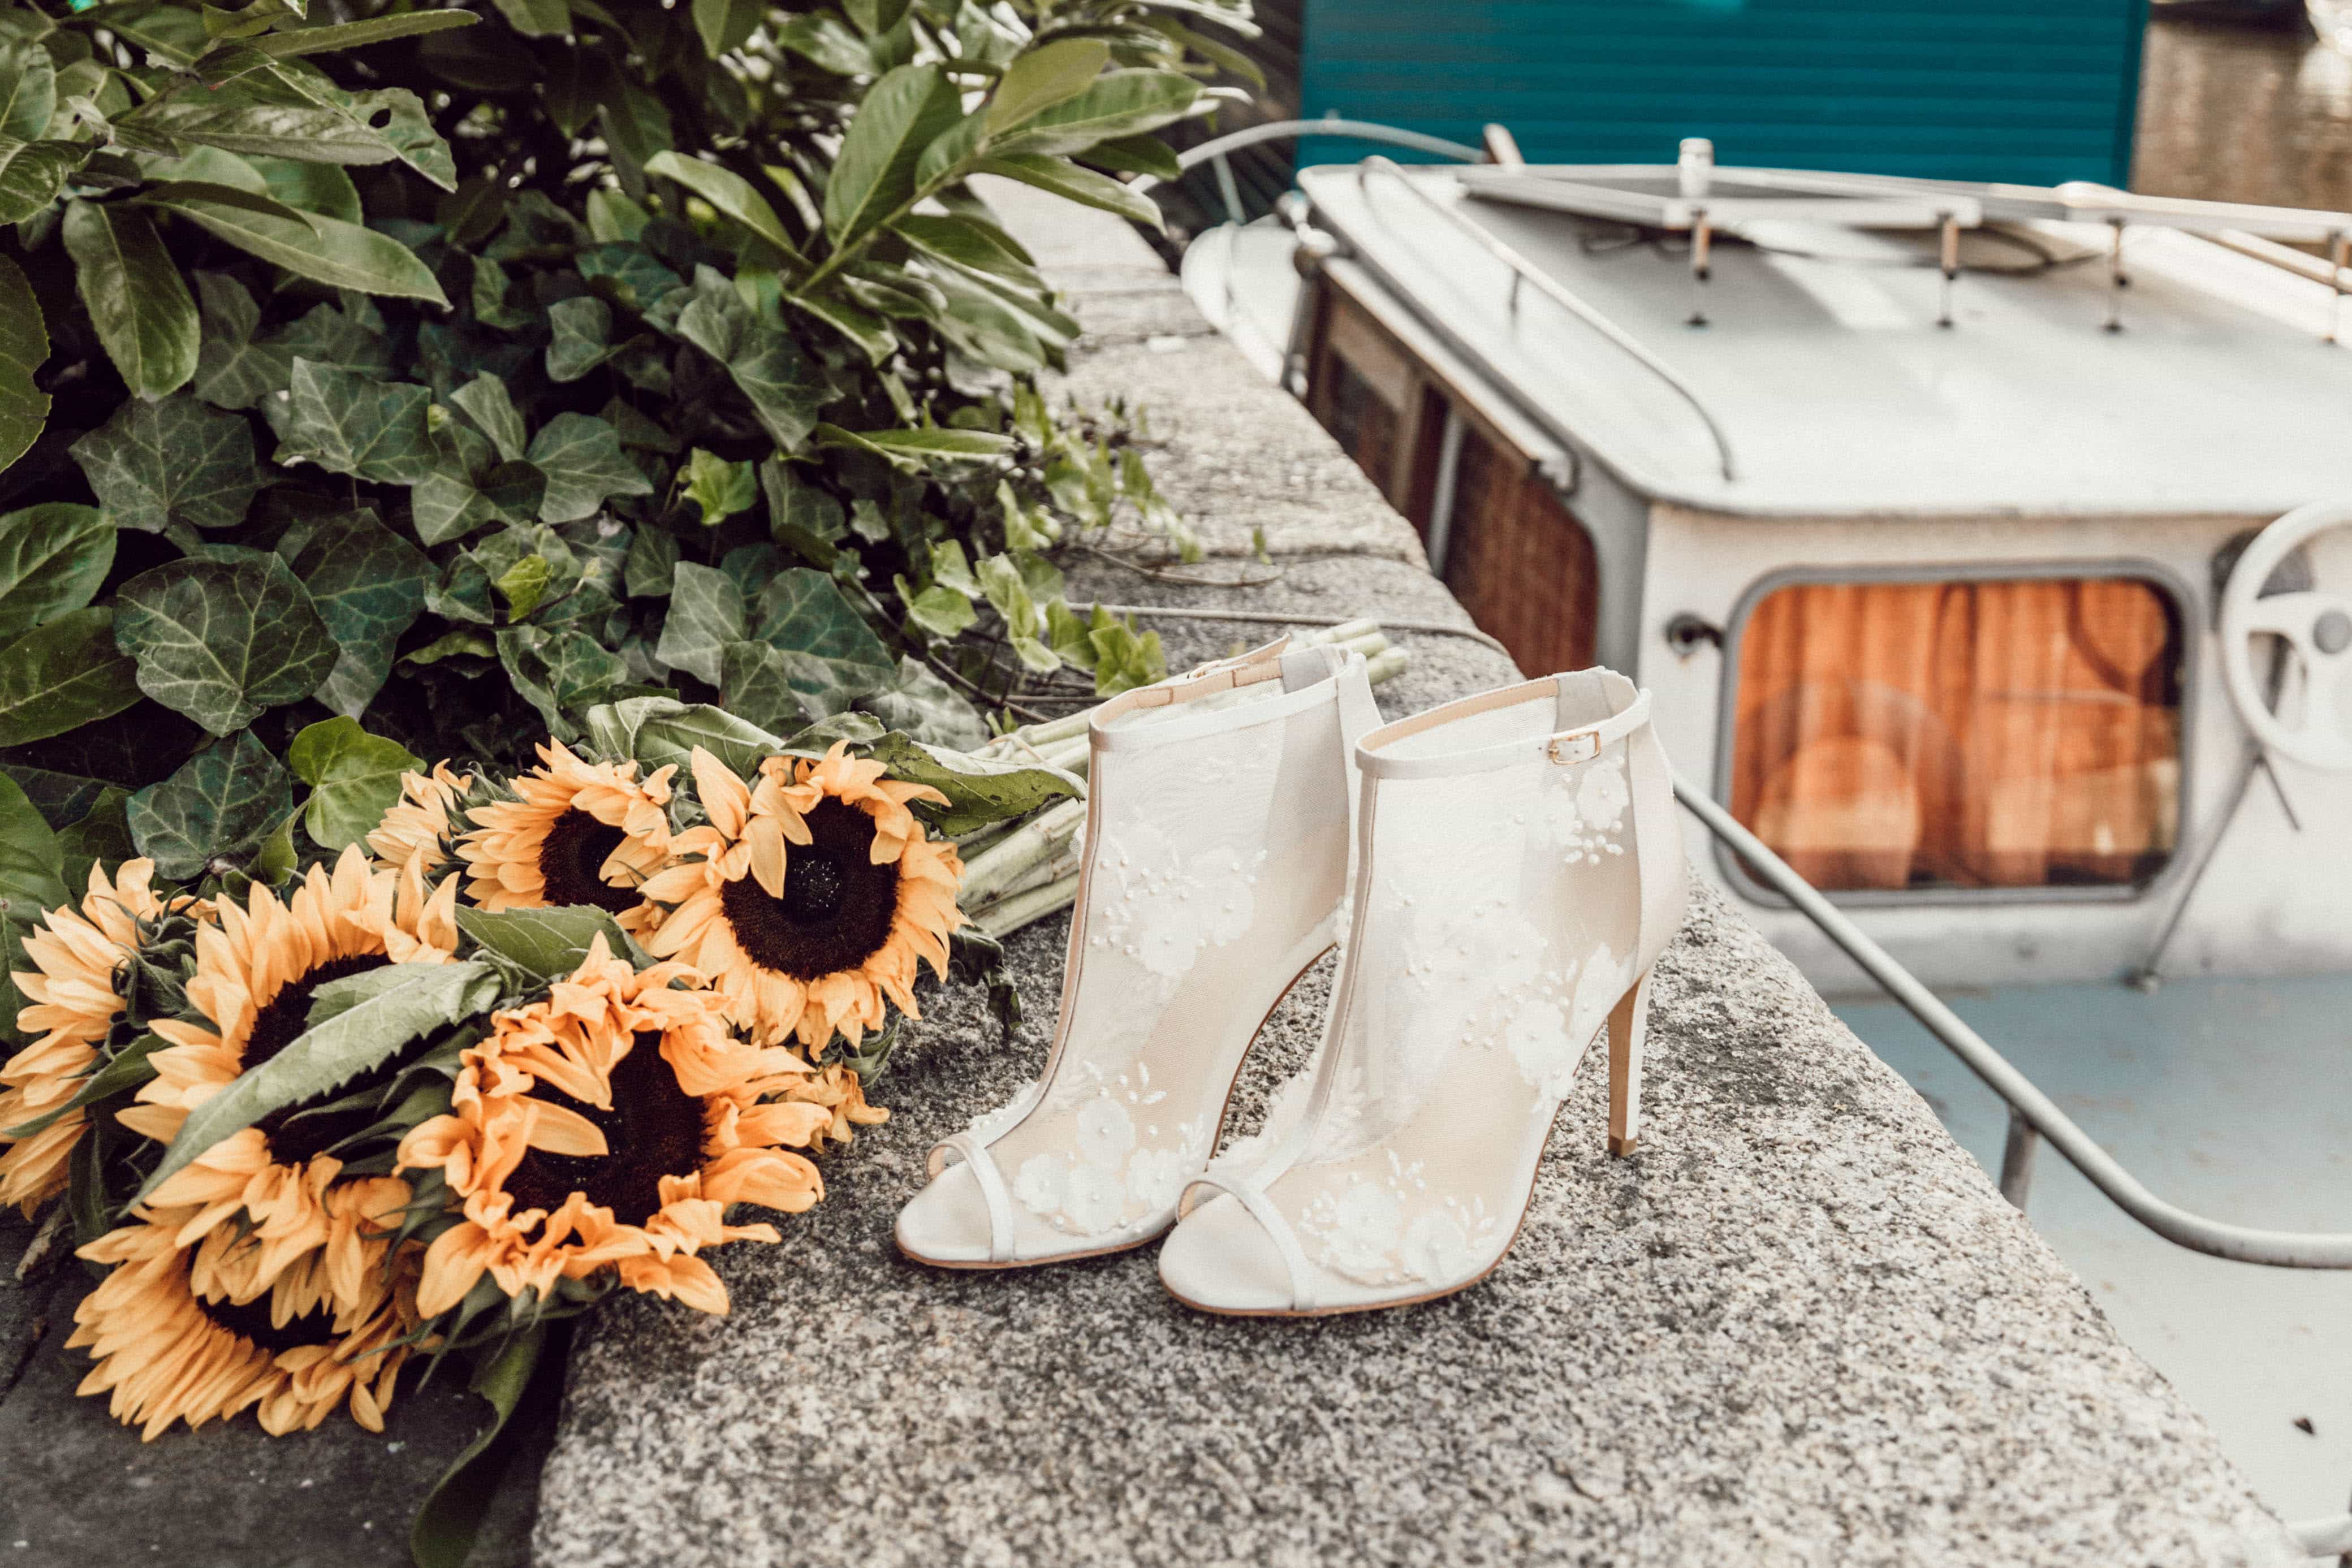 Lace booties, which are comfortable wide fit bridal shoes